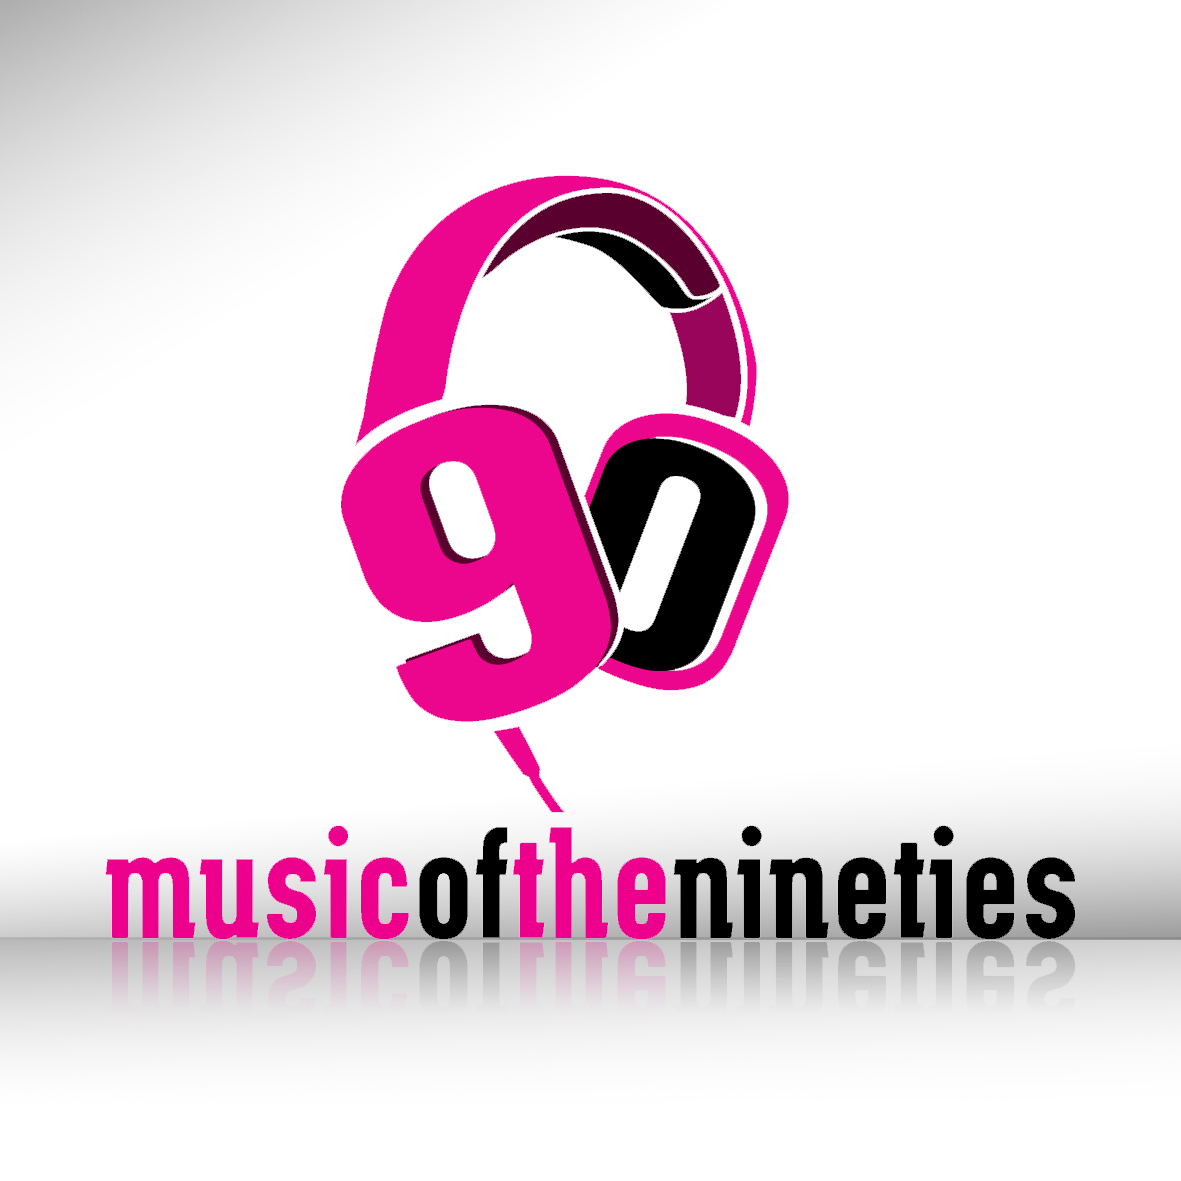 Logo Design by Alexander Ioannidis - Entry No. 11 in the Logo Design Contest Music of the Nineties Logo.